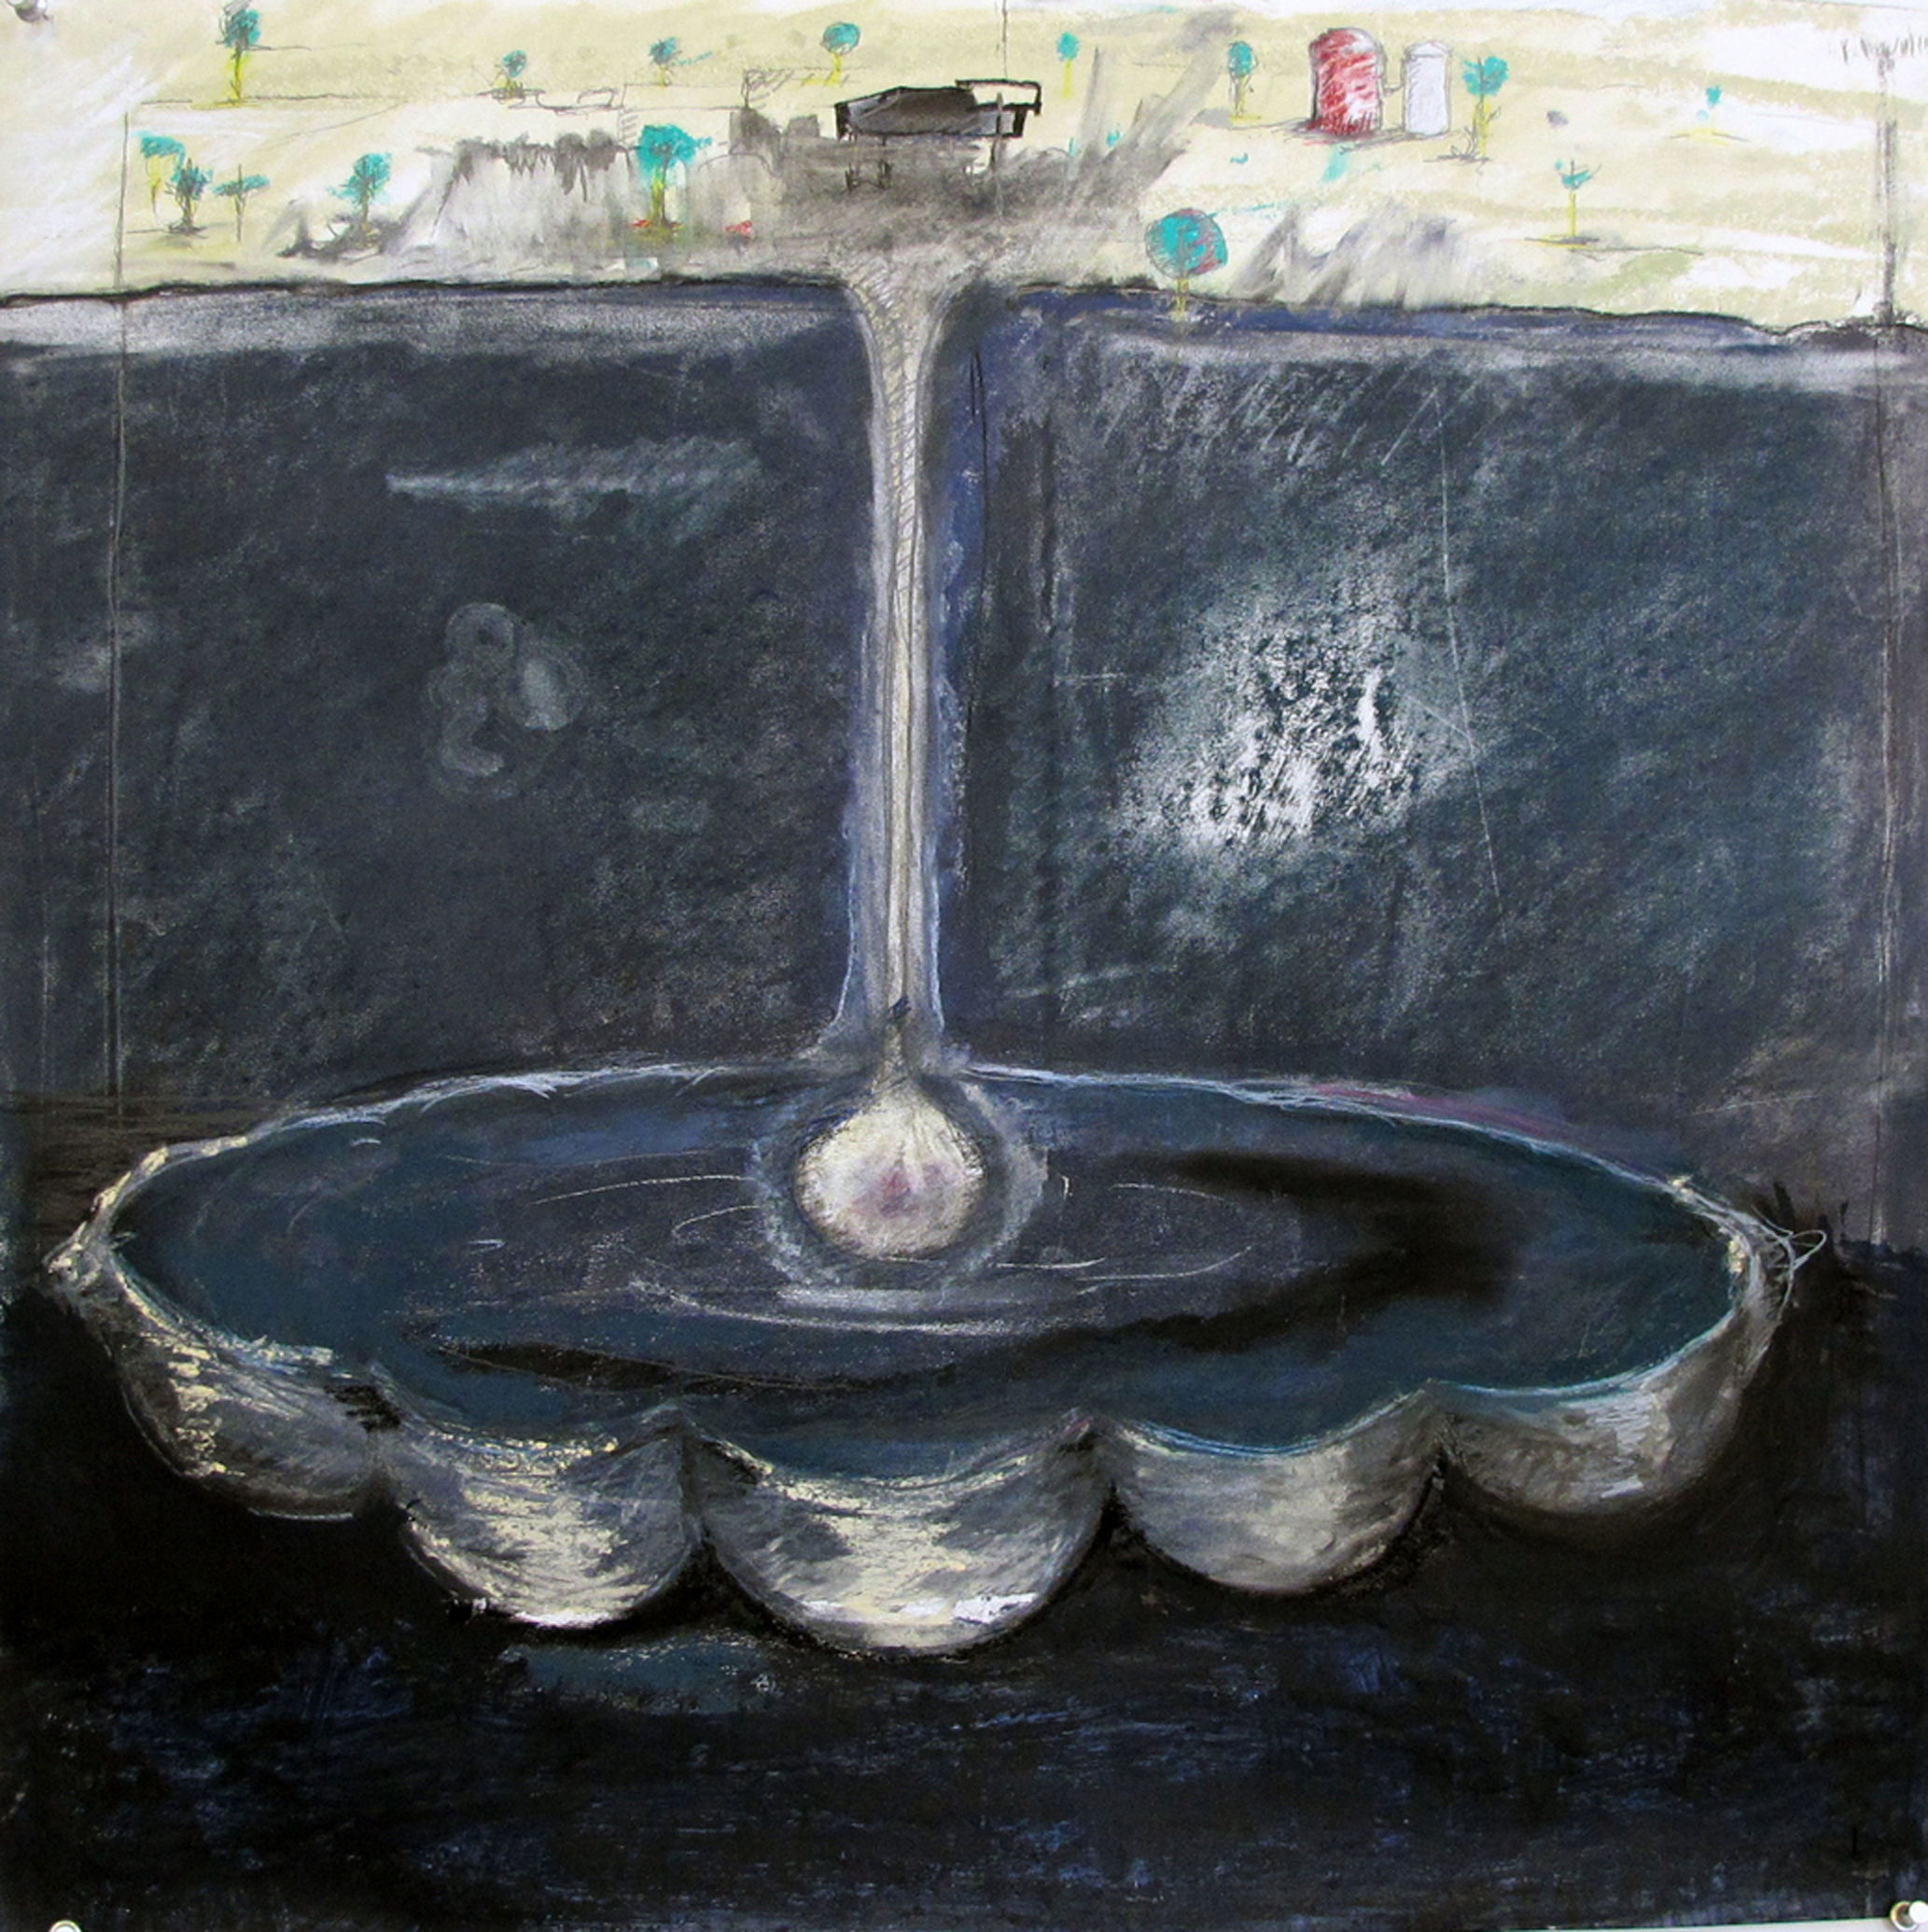 Jennifer Odem Extraction, 2011 Pastel, pencil, watercolor on paper 22 x 21 inches